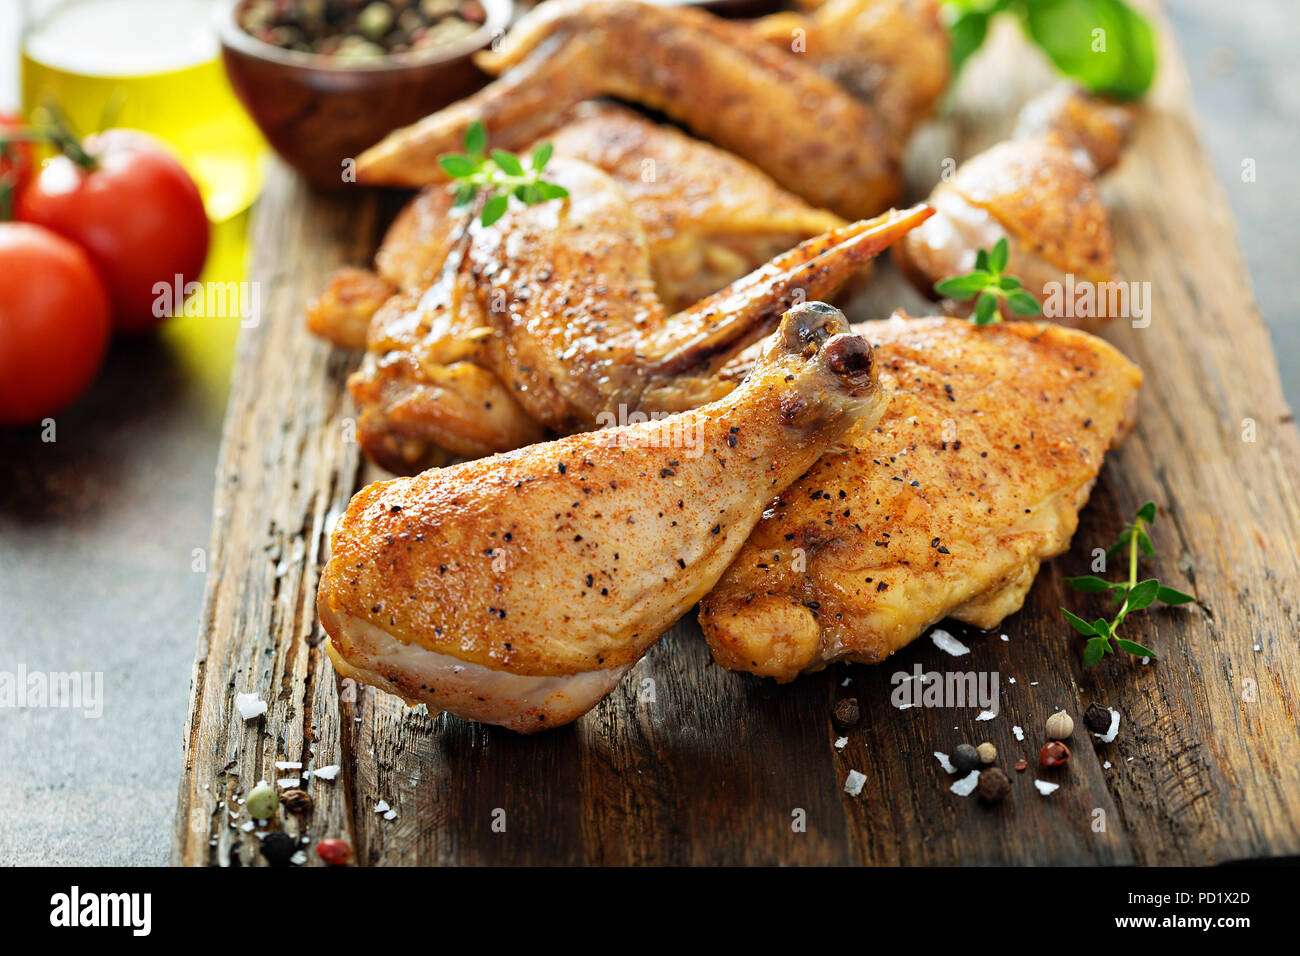 Pieces of grilled or smoked chicken - Stock Image